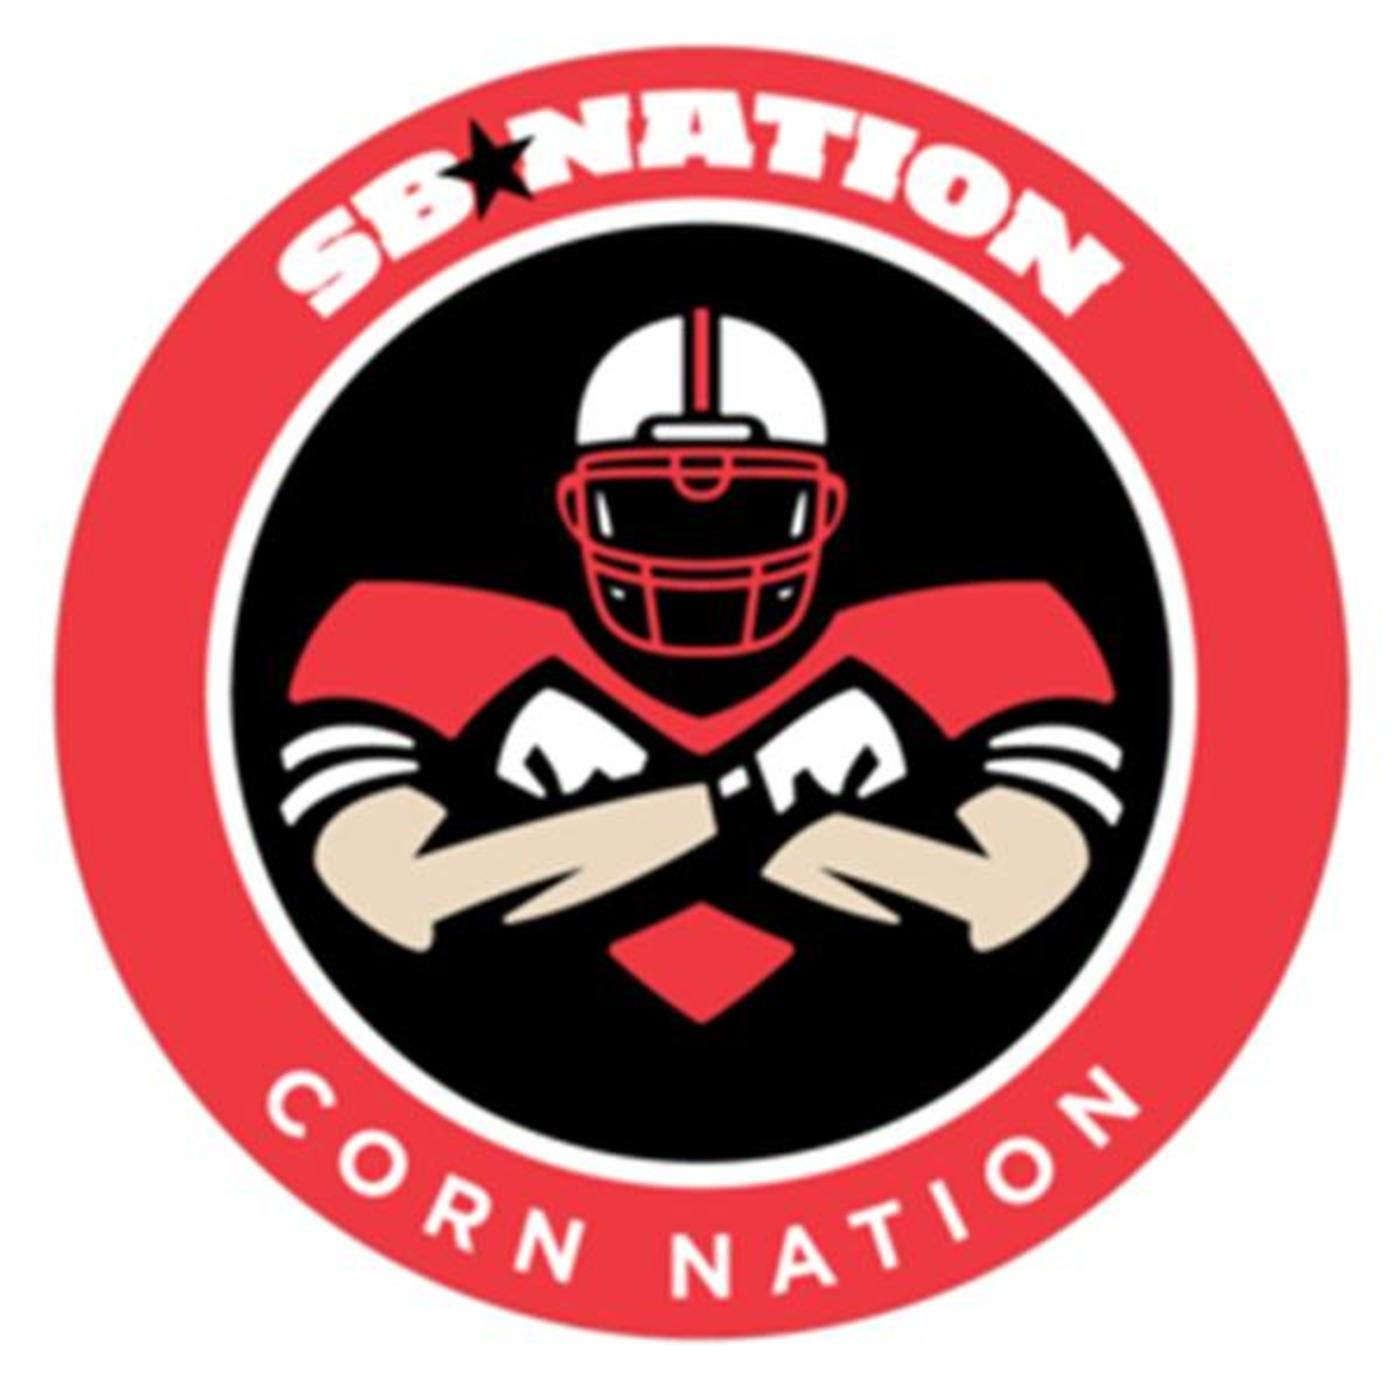 Corn Nation Live